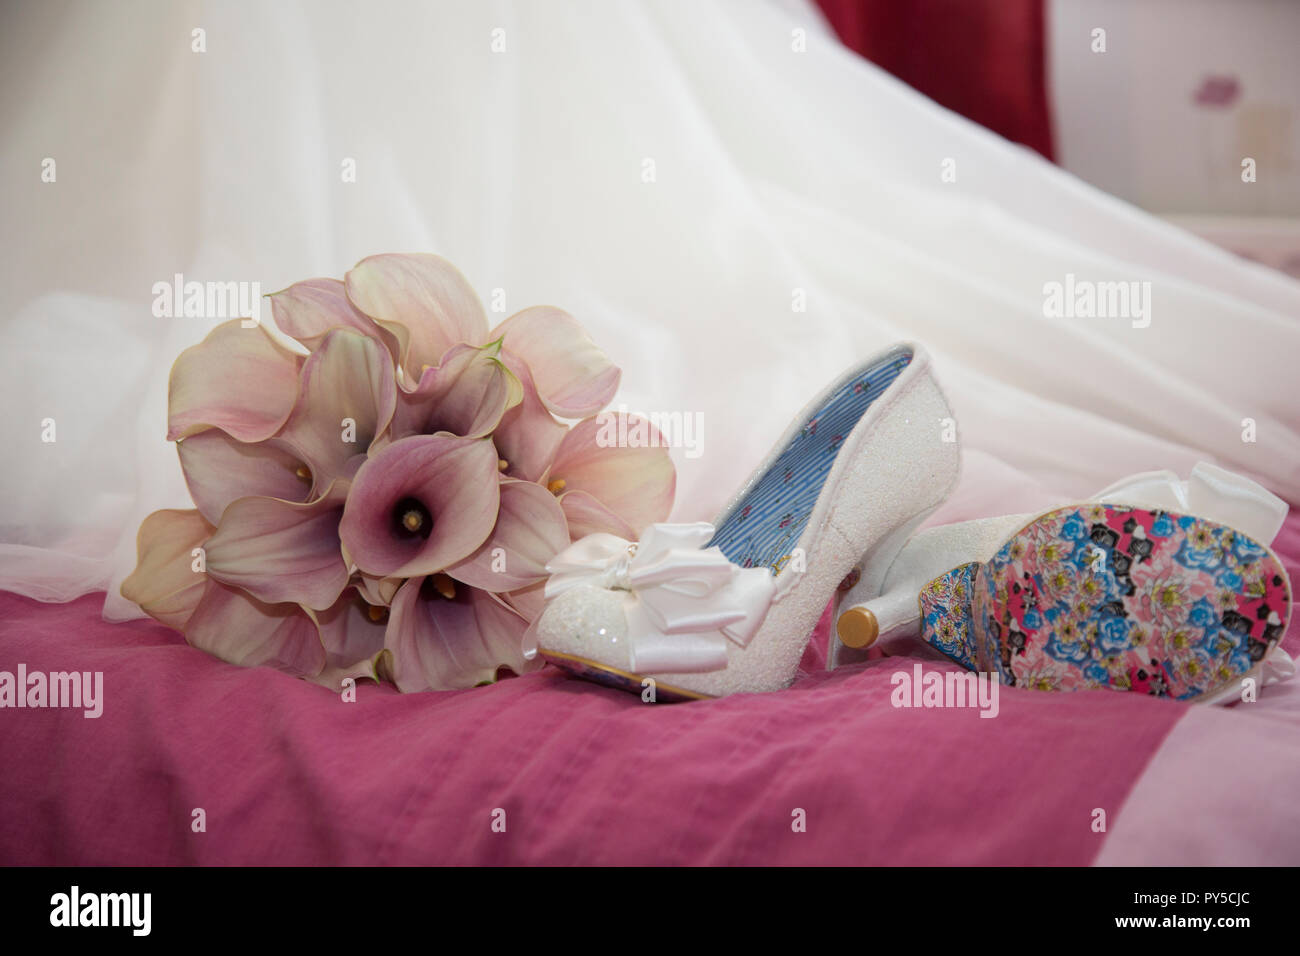 Brides Shoes On The Bed Next To Her Bouquet Of Pink Calla Lilies